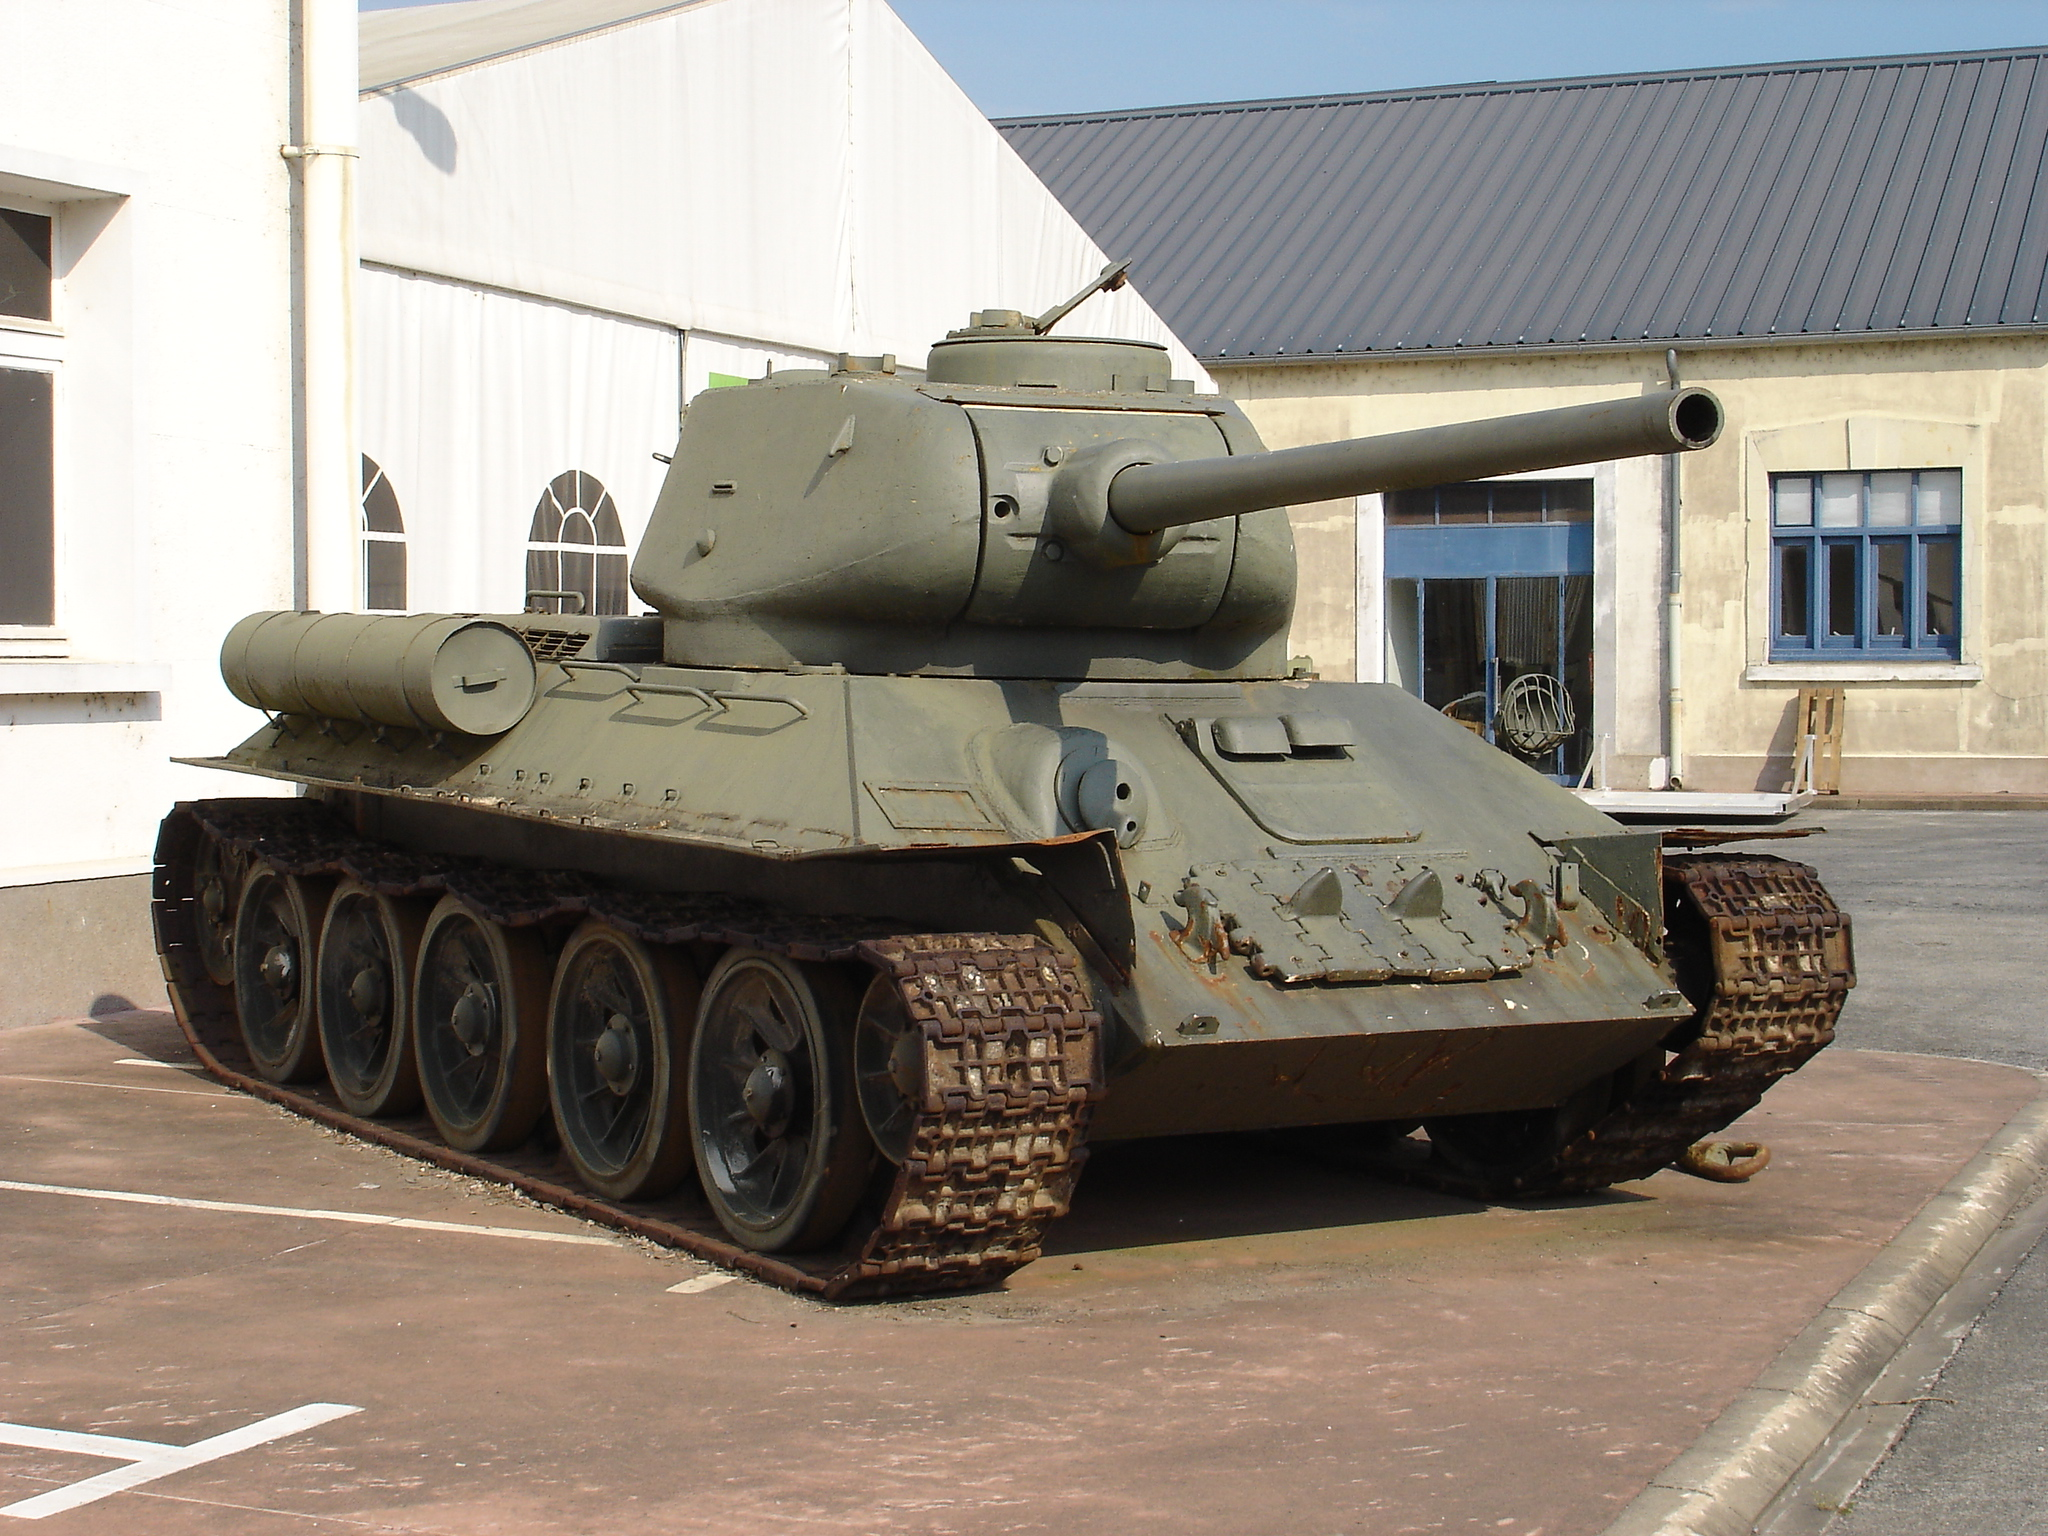 http://upload.wikimedia.org/wikipedia/commons/4/42/Char_T-34.jpg